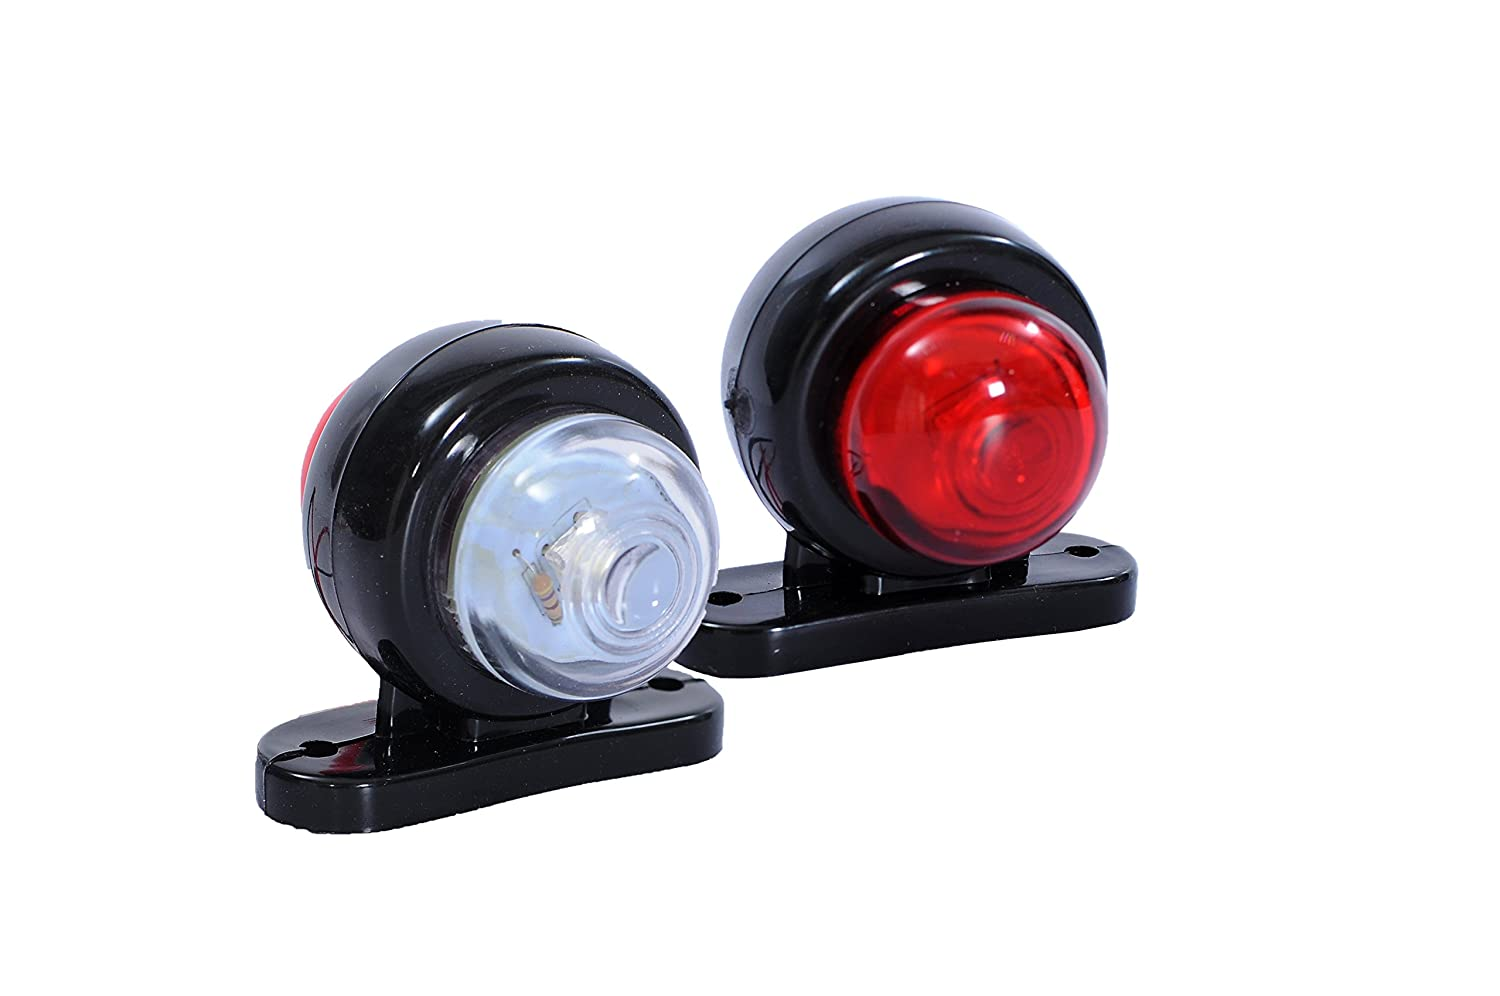 2 x LED SMD MINI SIDE RUBBER MARKER LIGHTS LAMP INDICATOR TRAILER TRUCK 12V